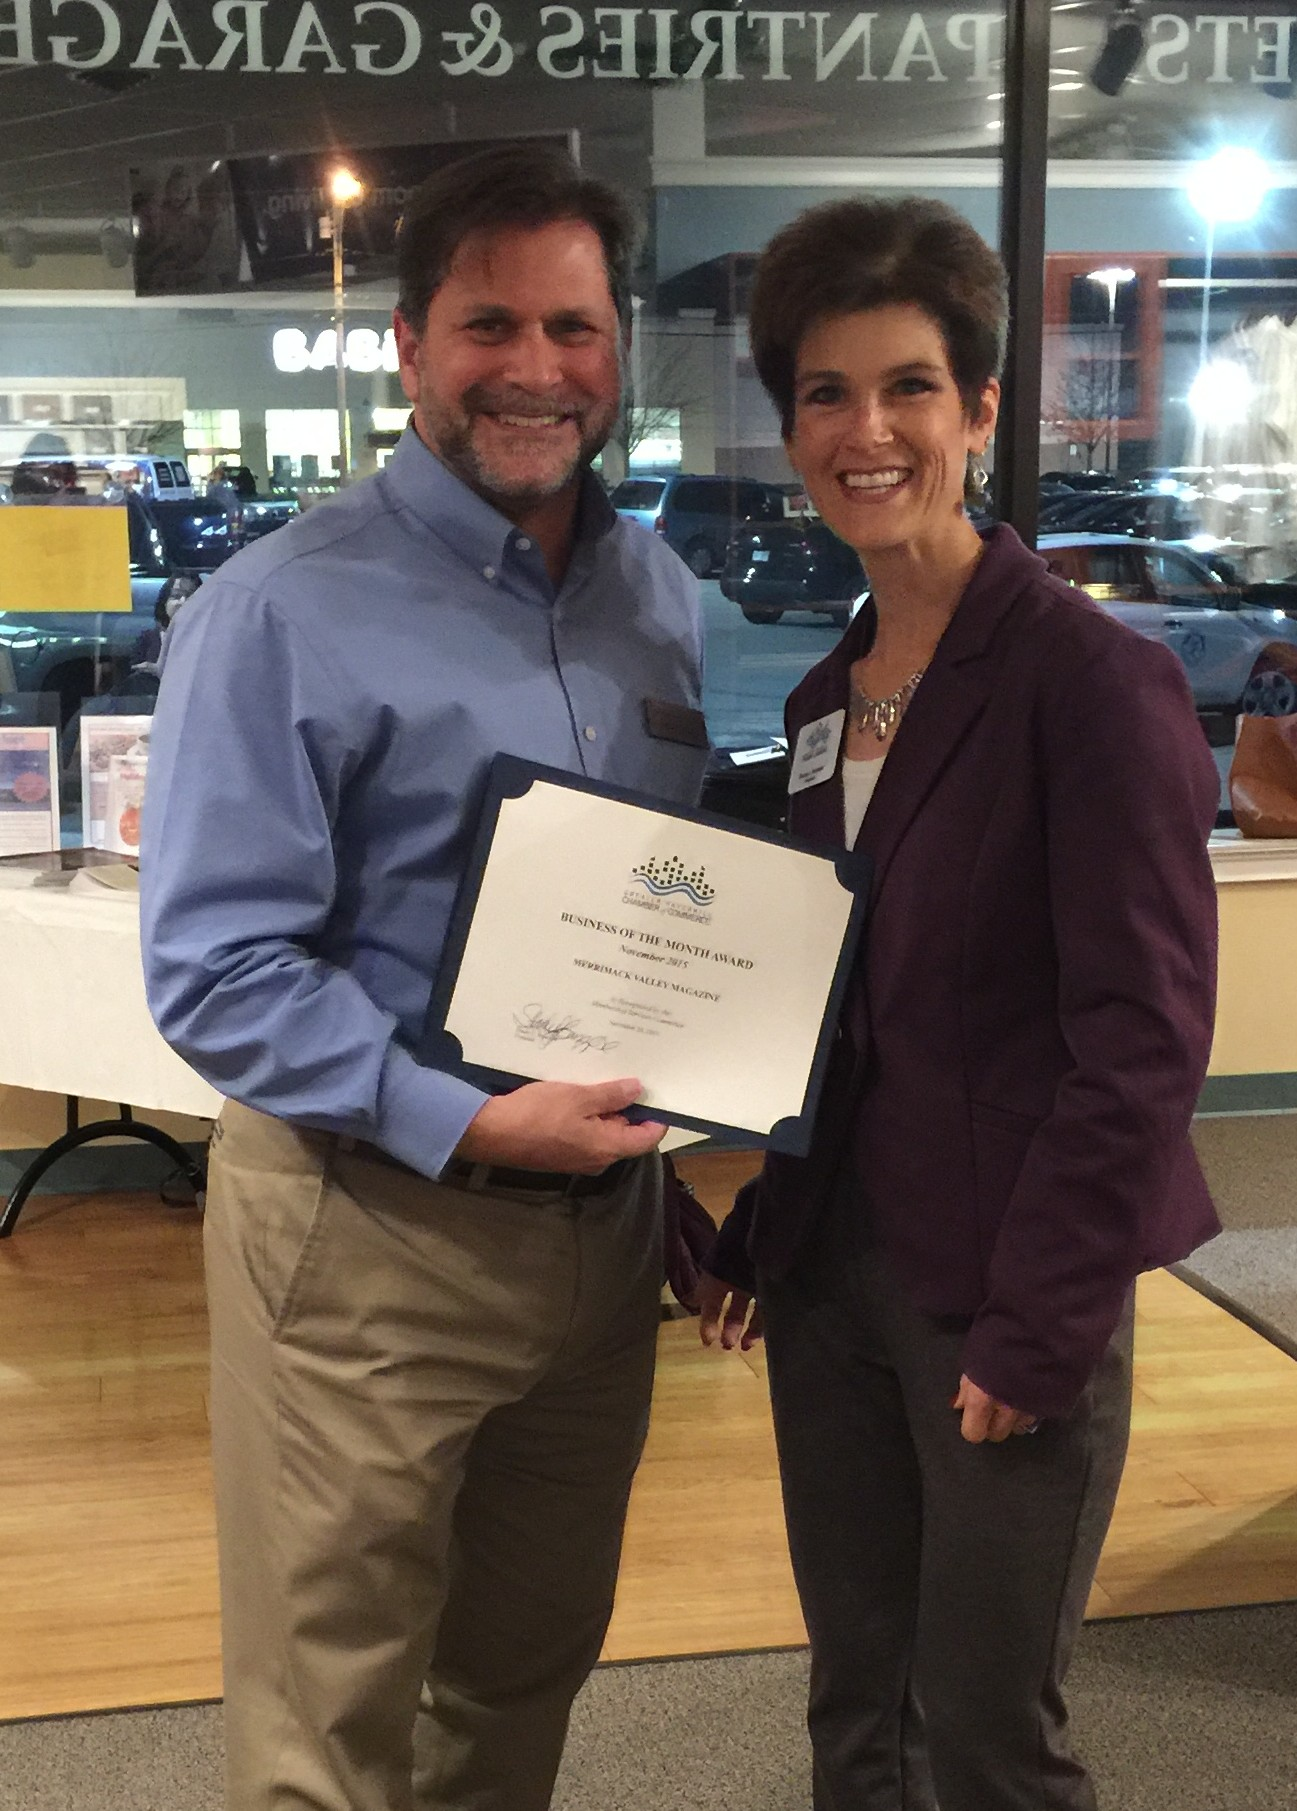 NOVEMBER BUSINESS OF THE MONTH DISTINCTION BESTOWED UPON MERRIMACK VALLEY MAGAZINE